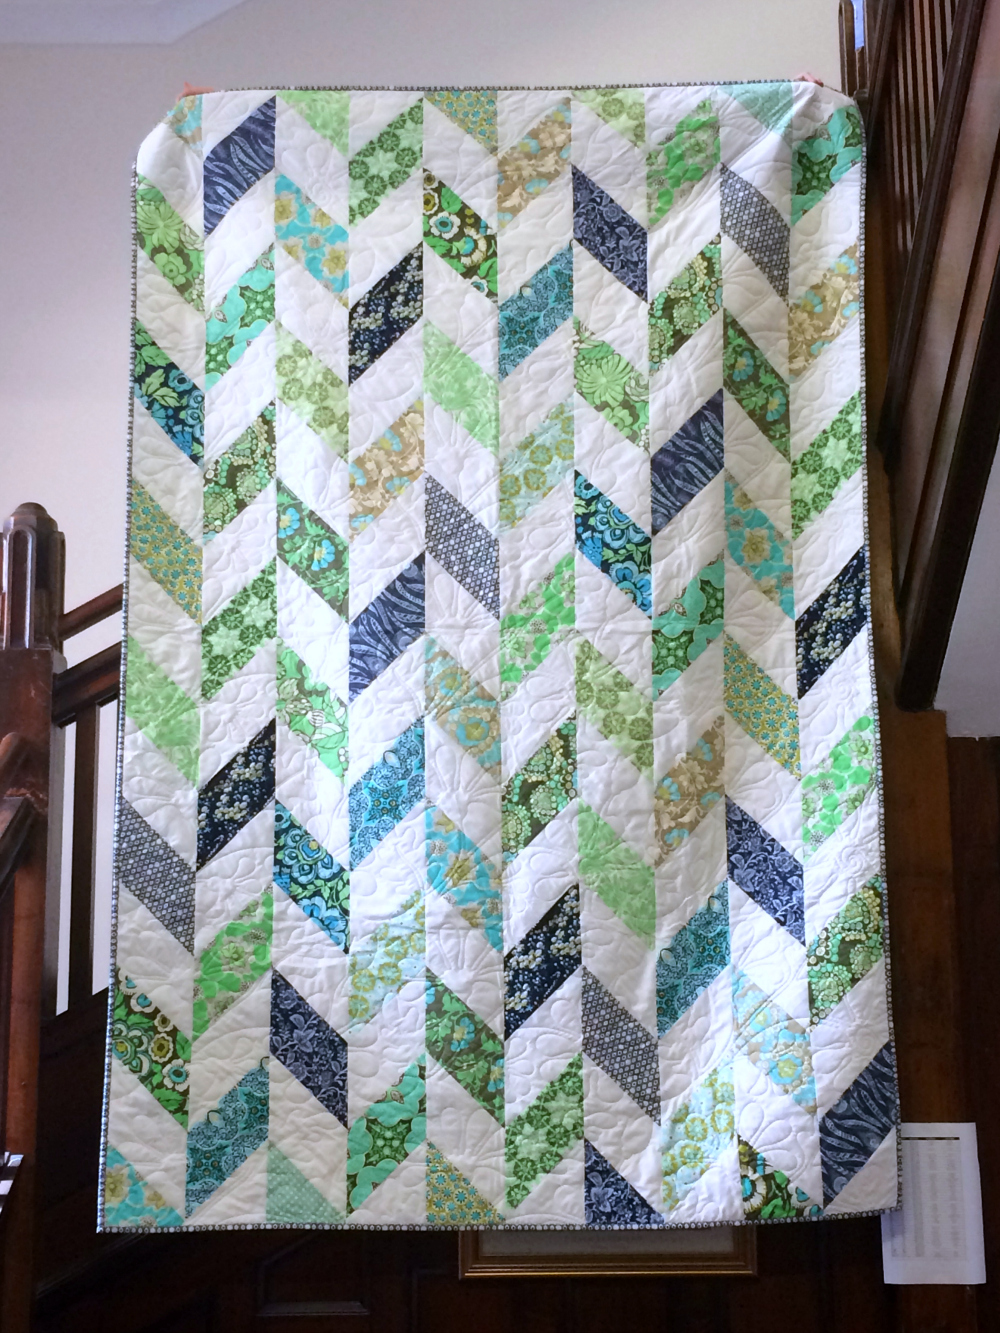 Artful Homemade Quilts Have A Way | Page 310 | US Message Board ... : parallelogram quilt pattern - Adamdwight.com